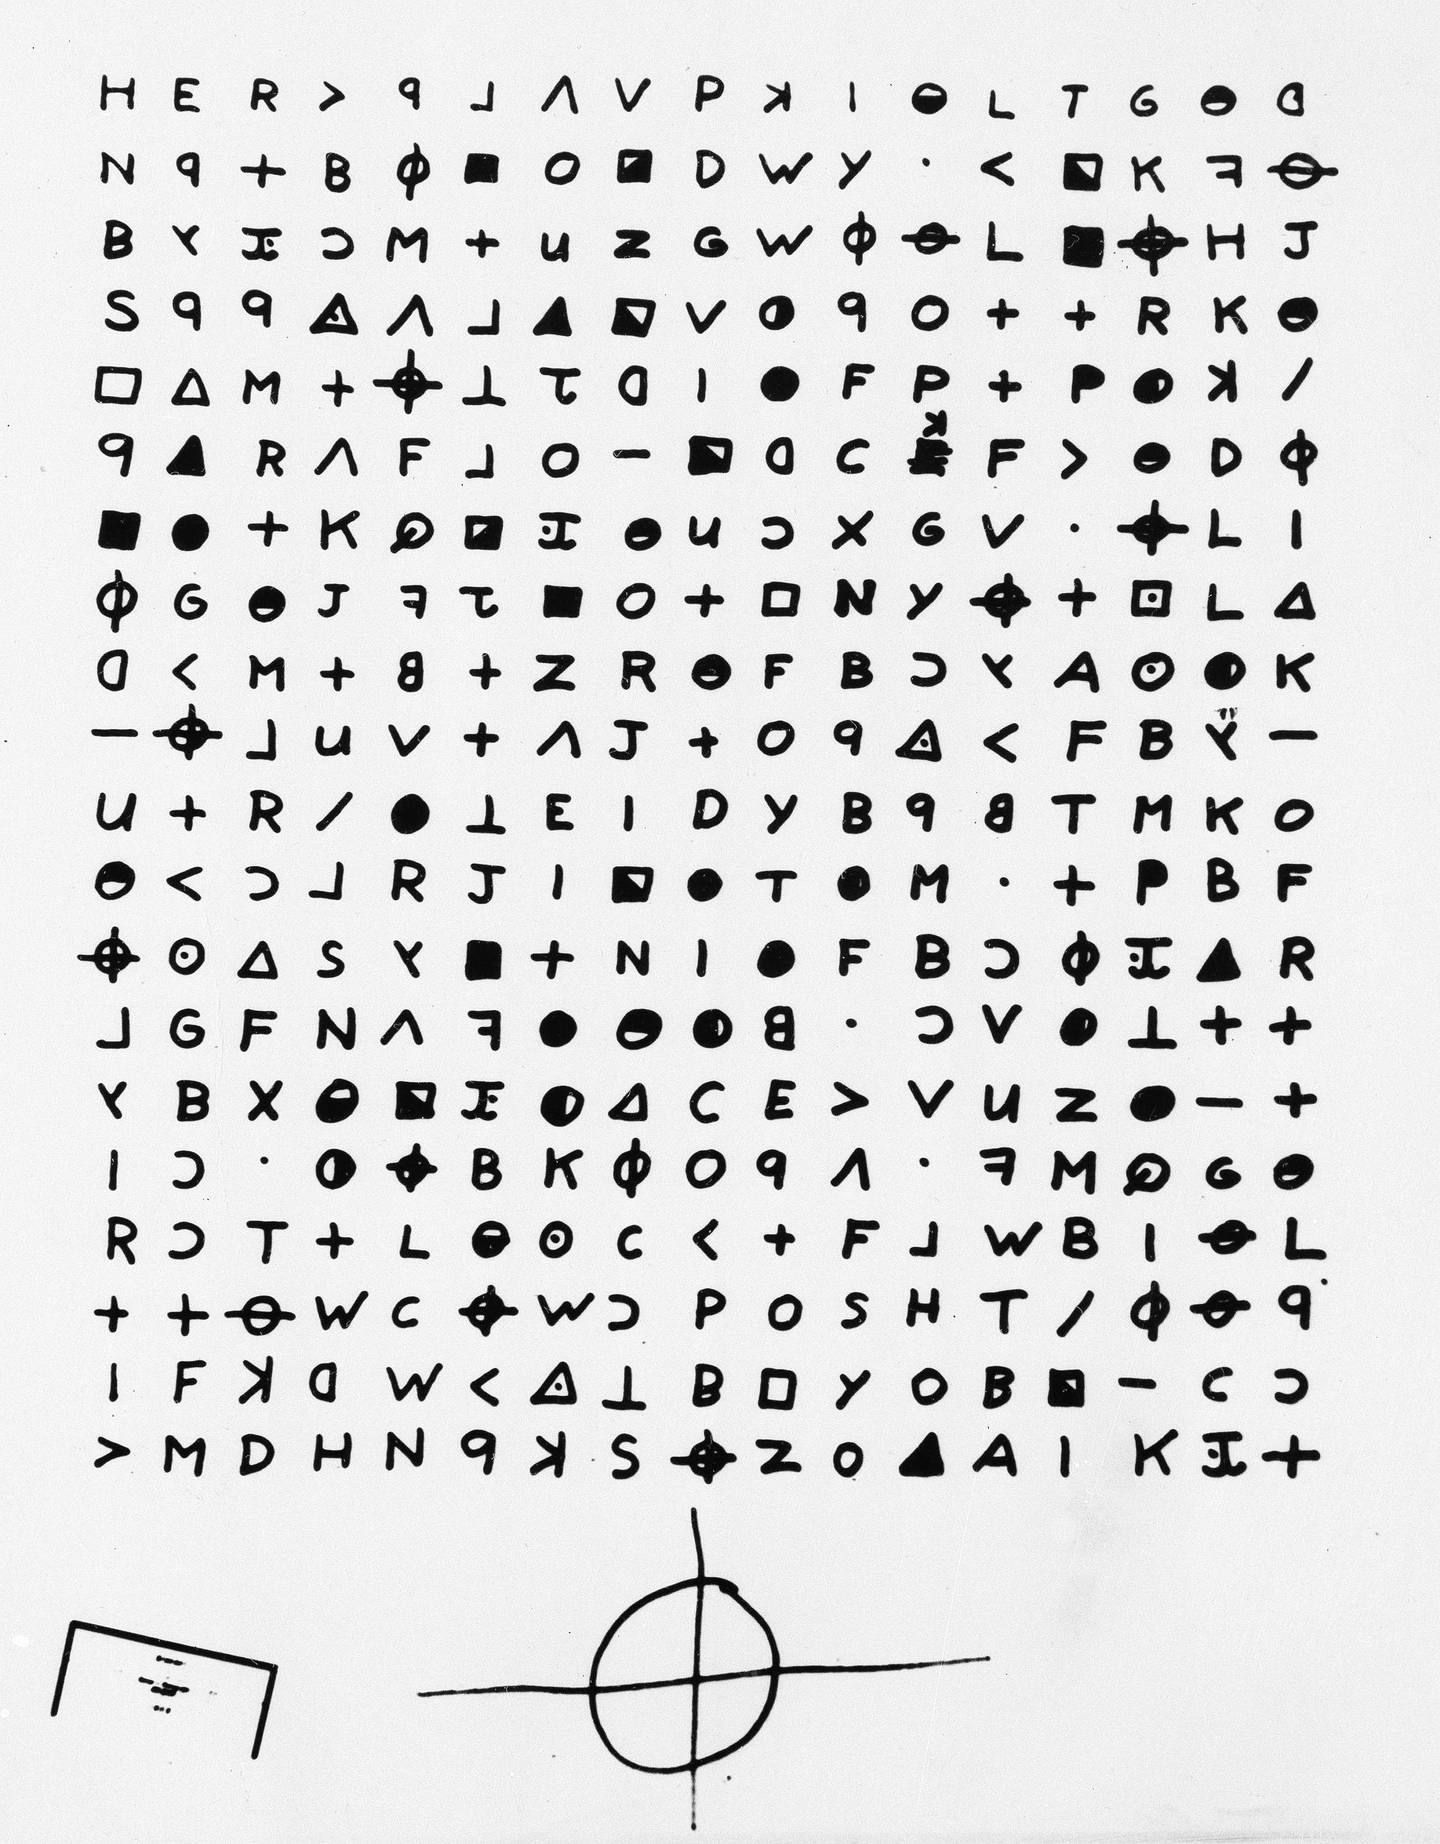 FILE - This is a file copy of a cryptogram sent to the San Francisco Chronicle in 1969 by the Zodiac Killer. A coded letter mailed to a San Francisco newspaper by the Zodiac serial killer in 1969 has been deciphered by a team of amateur sleuths from the United States, Australia and Belgium, the San Francisco Chronicle reported Friday, Dec. 11, 2020. (San Francisco Chronicle via AP, File)/San Francisco Chronicle via AP)